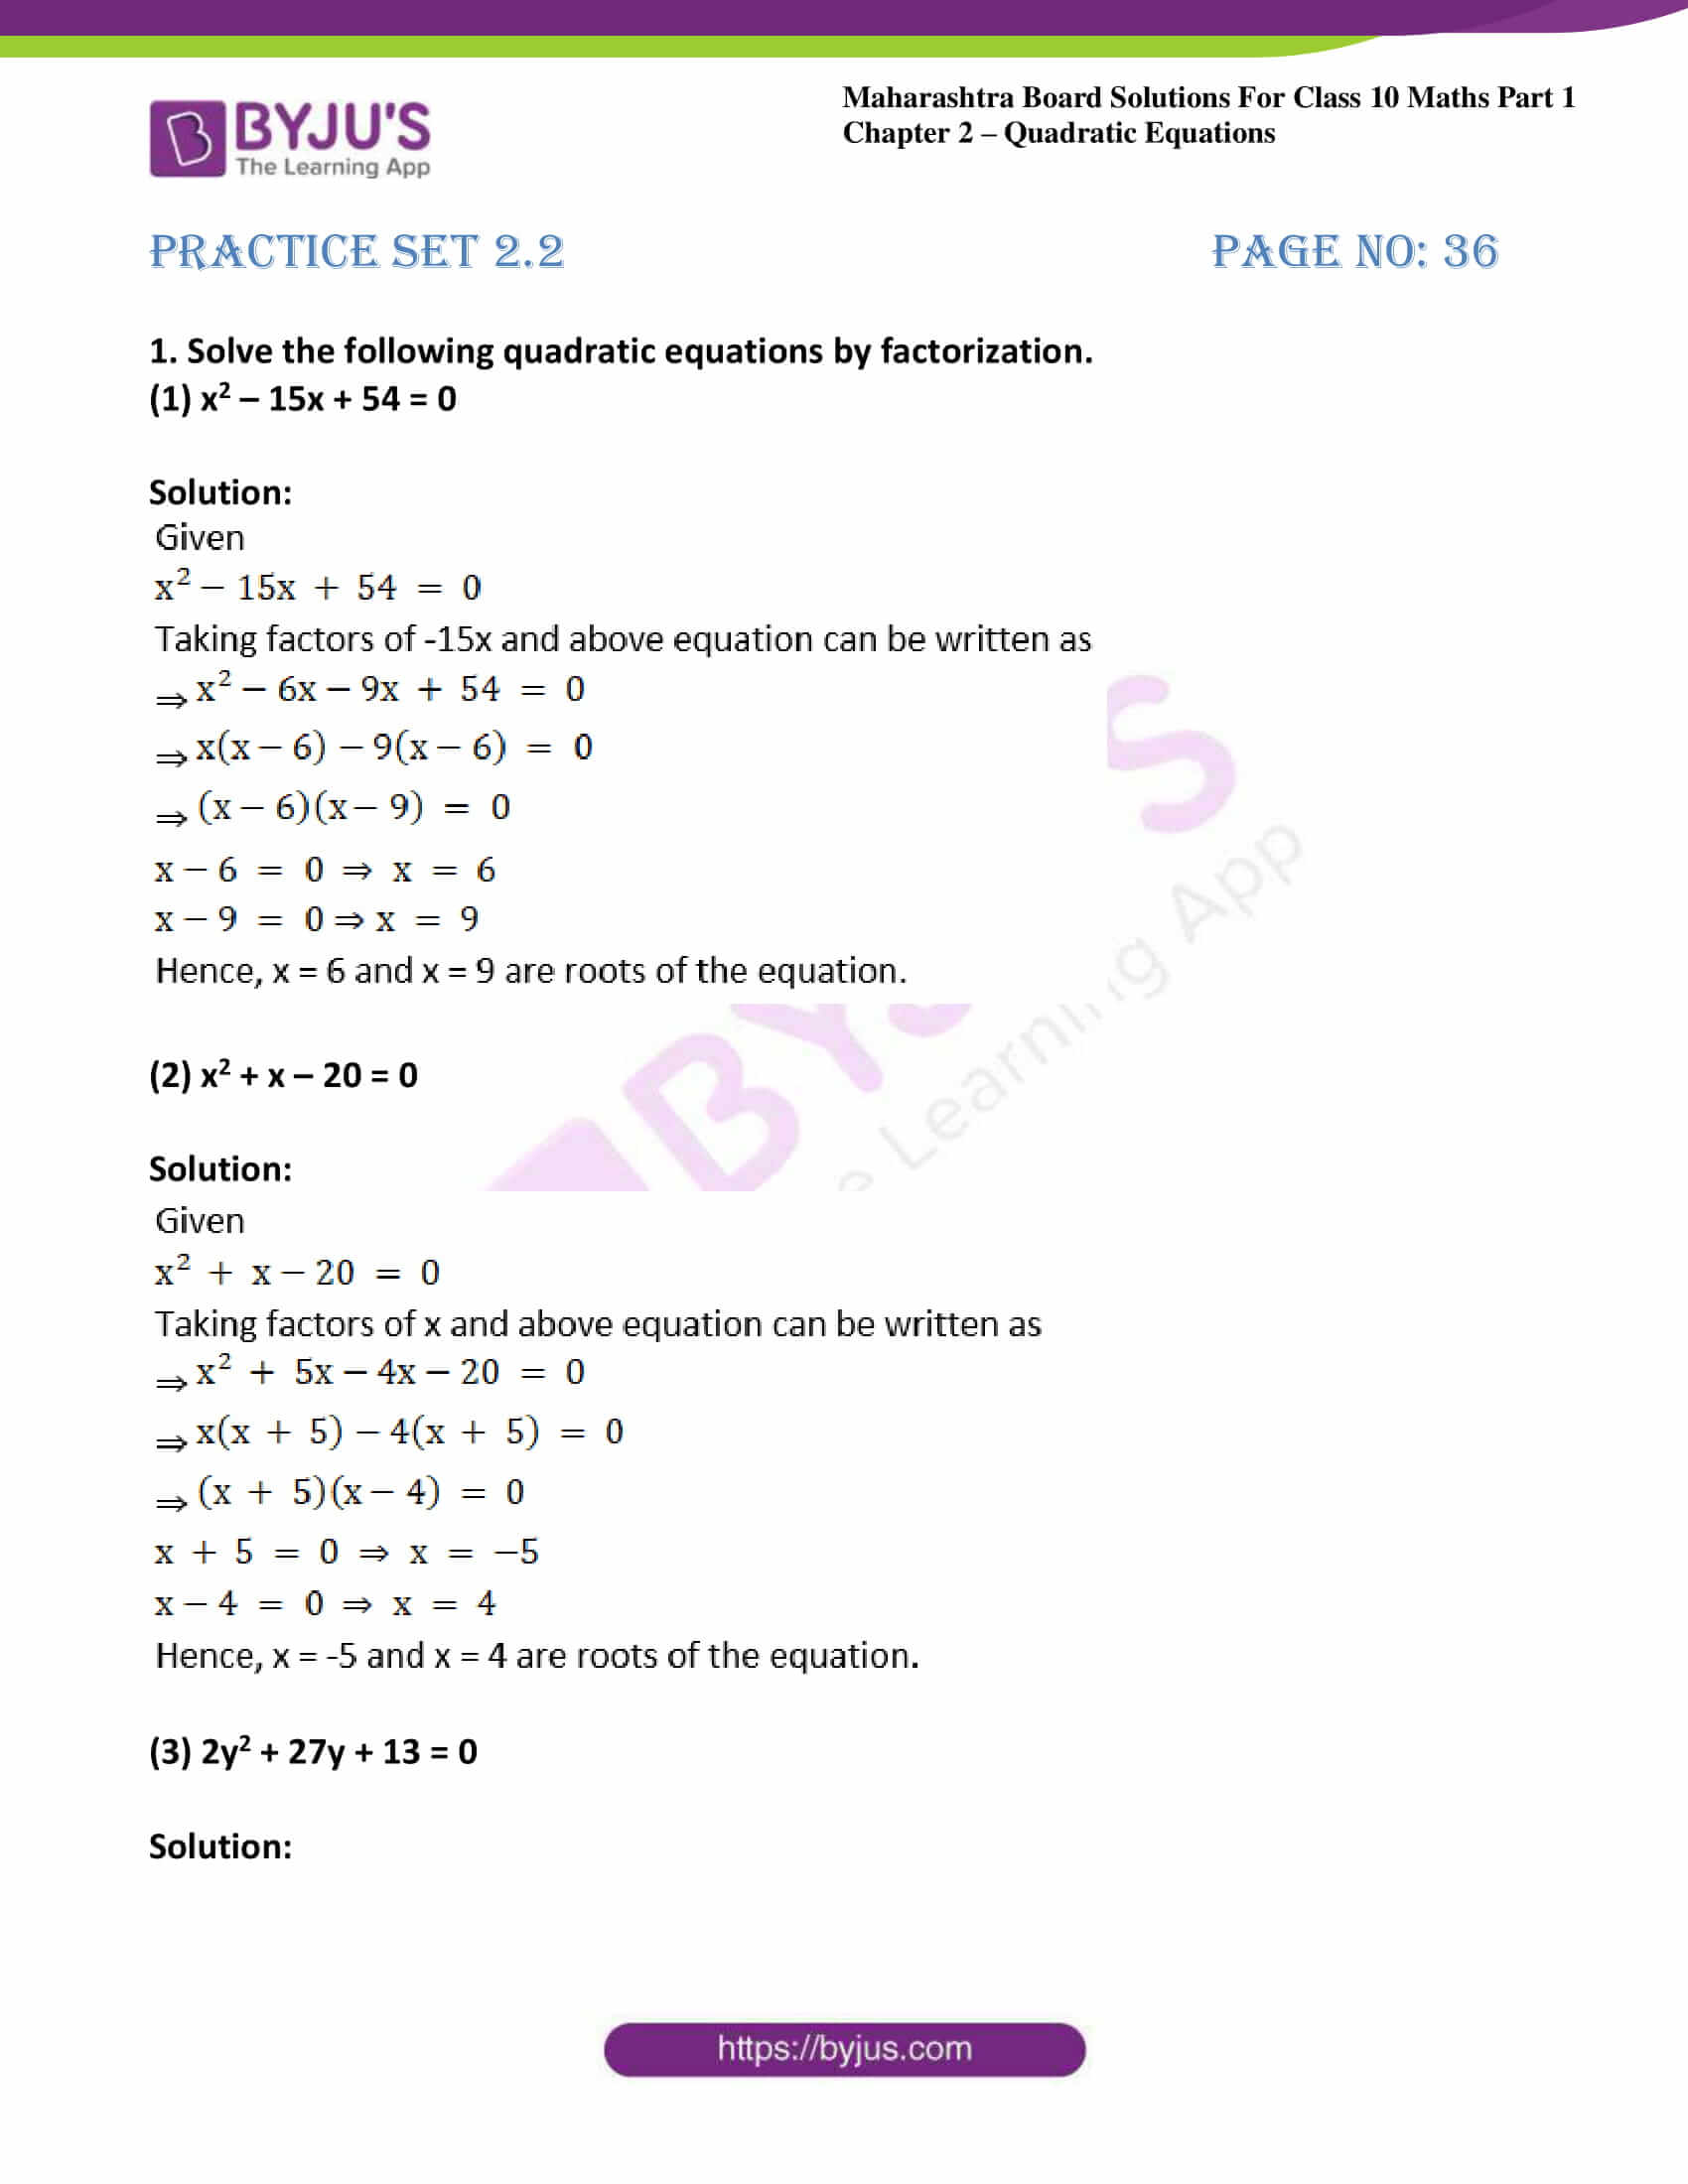 msbshse solutions class 10 maths part 1 chapter 2 06